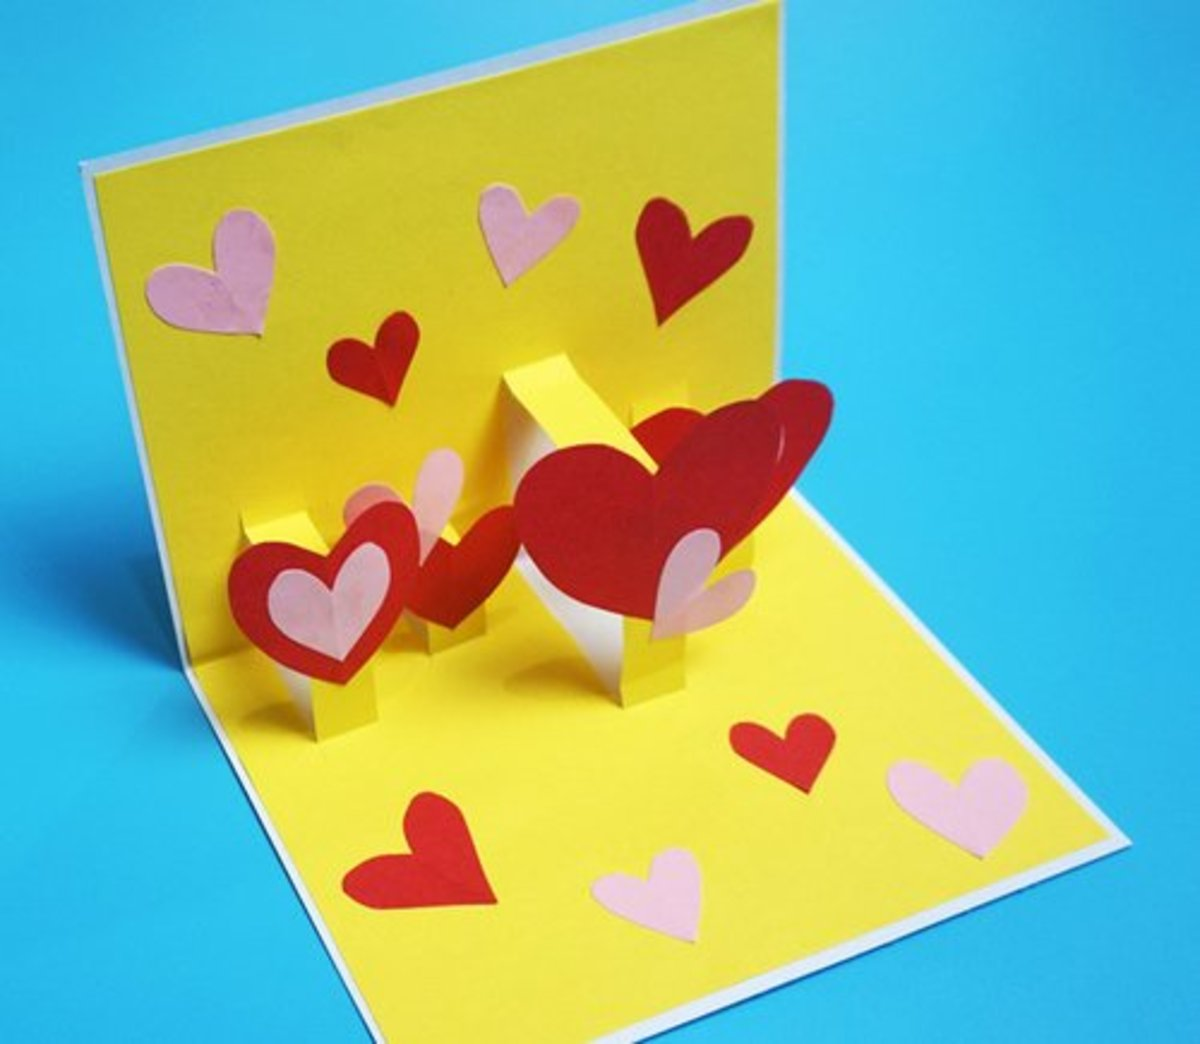 37 DIY Ideas for Making Pop-Up Cards